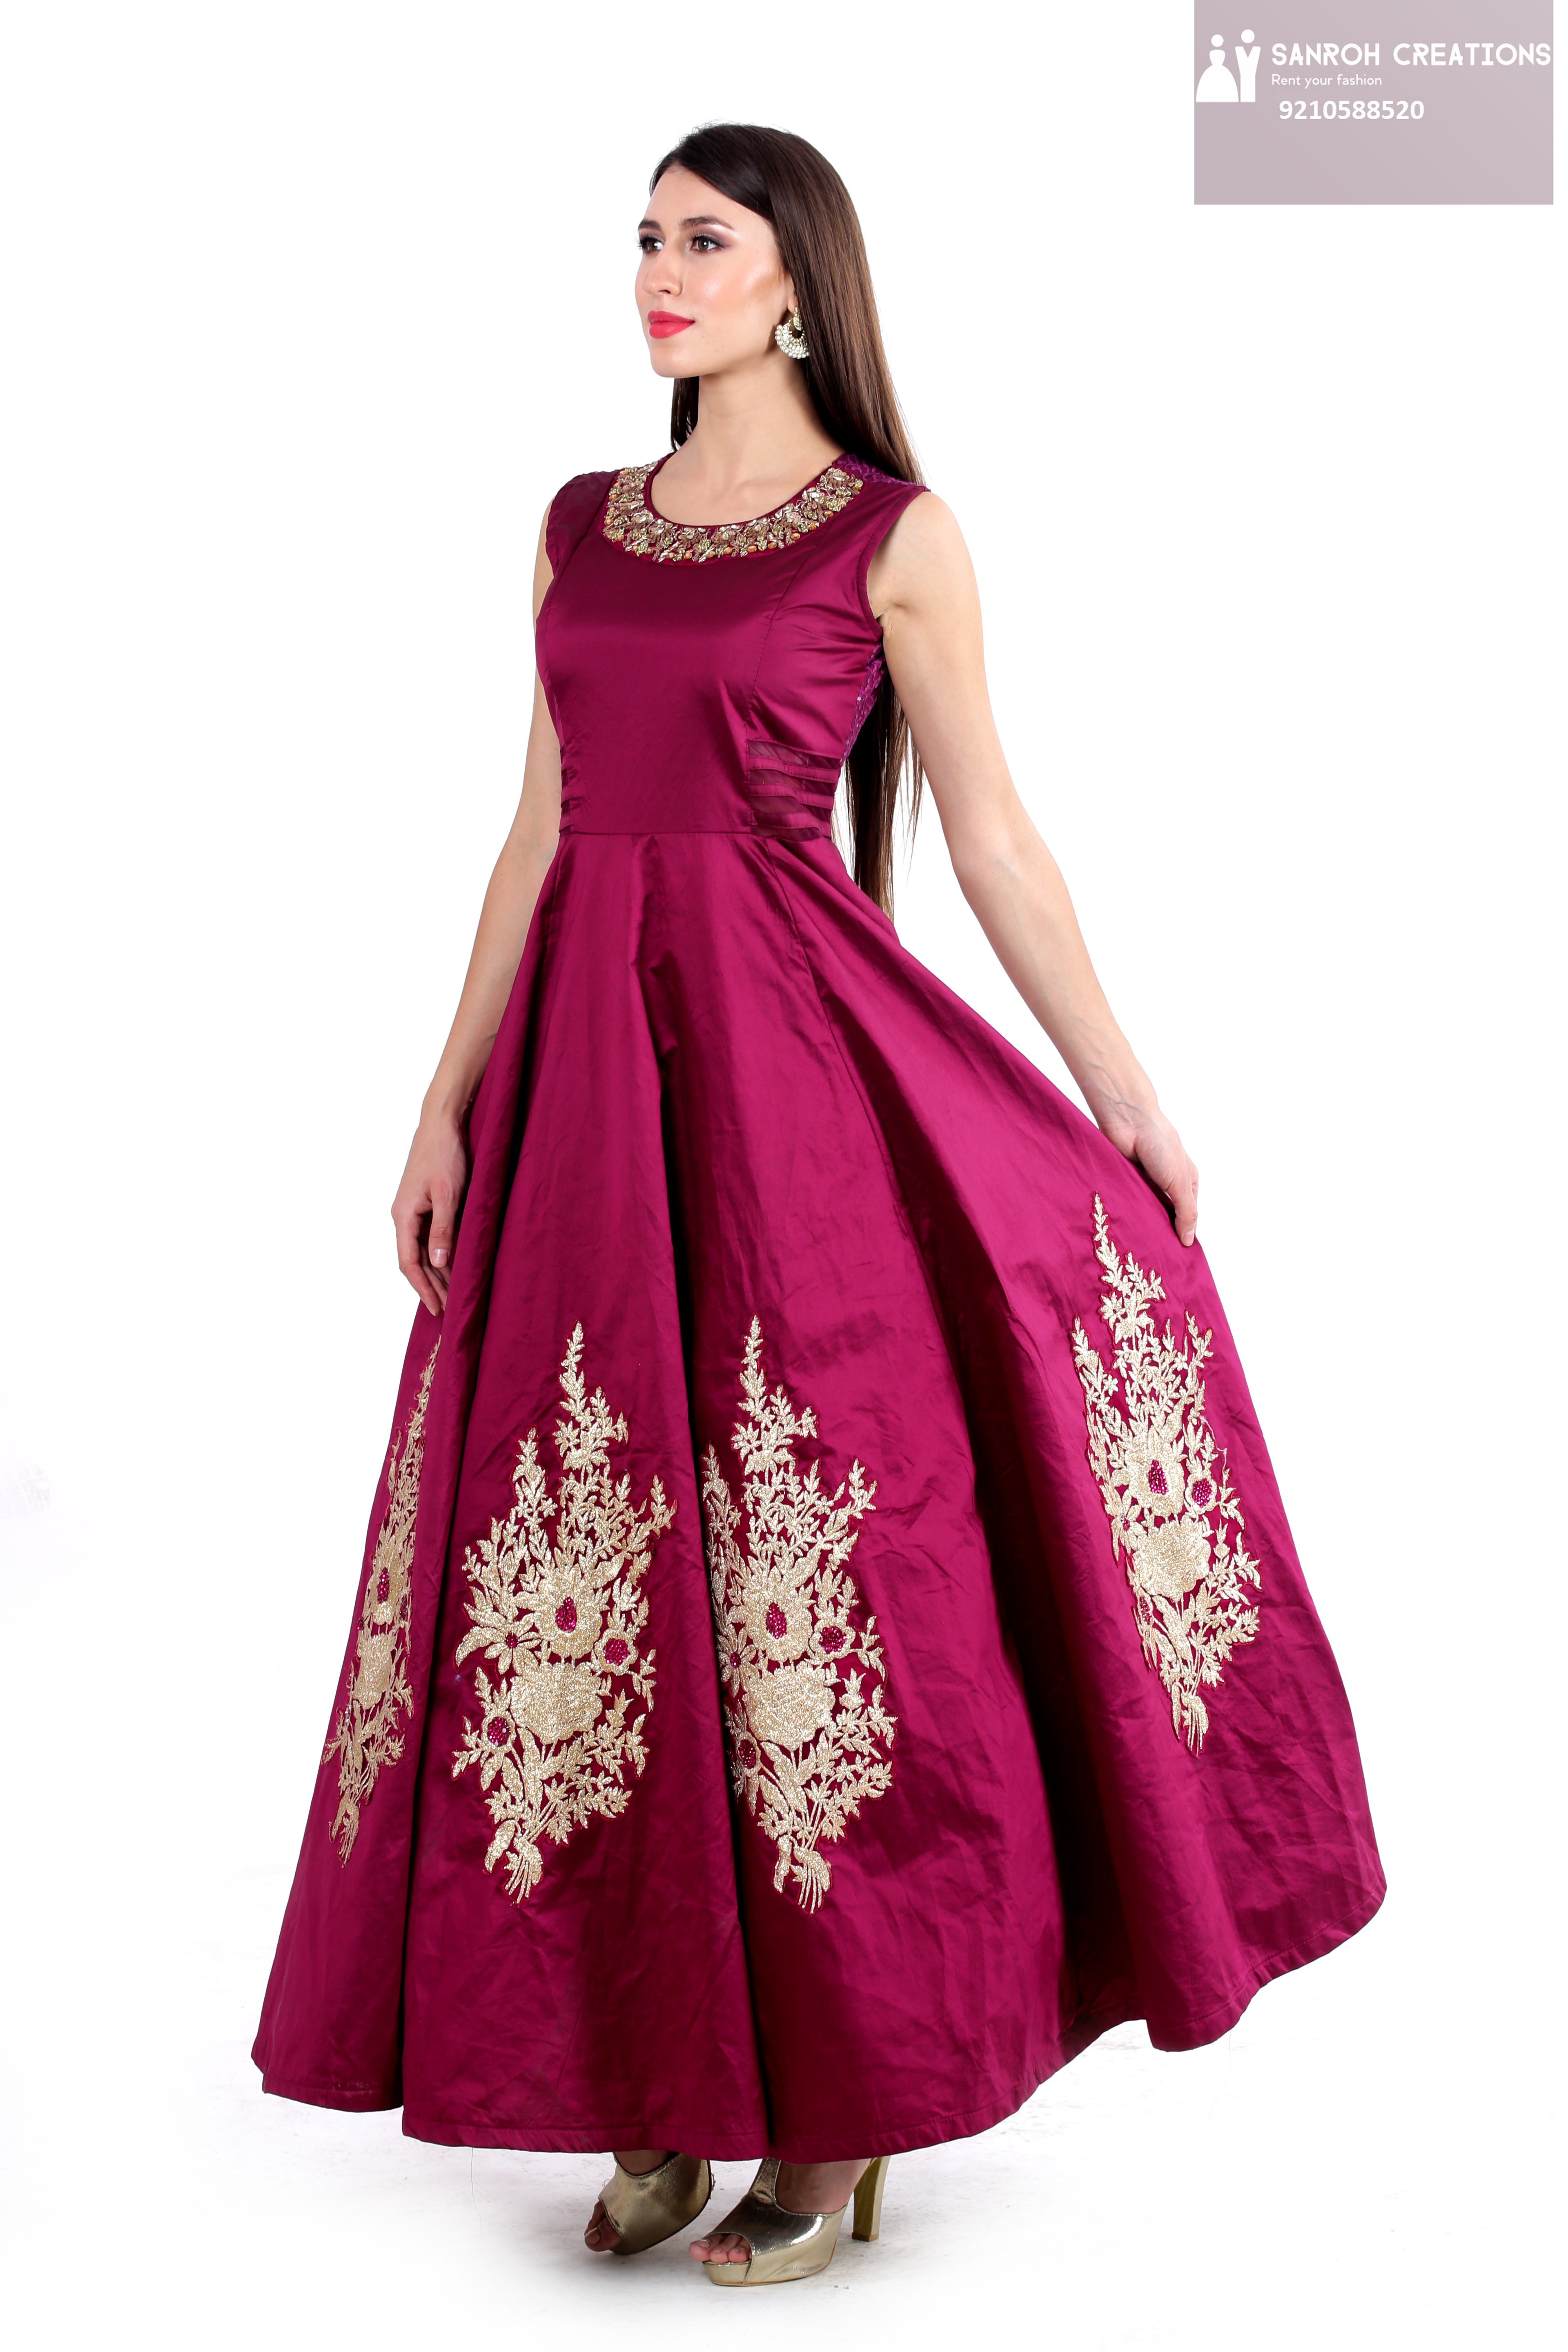 party wear dresses for girl on rent in Gurgaon sector 50